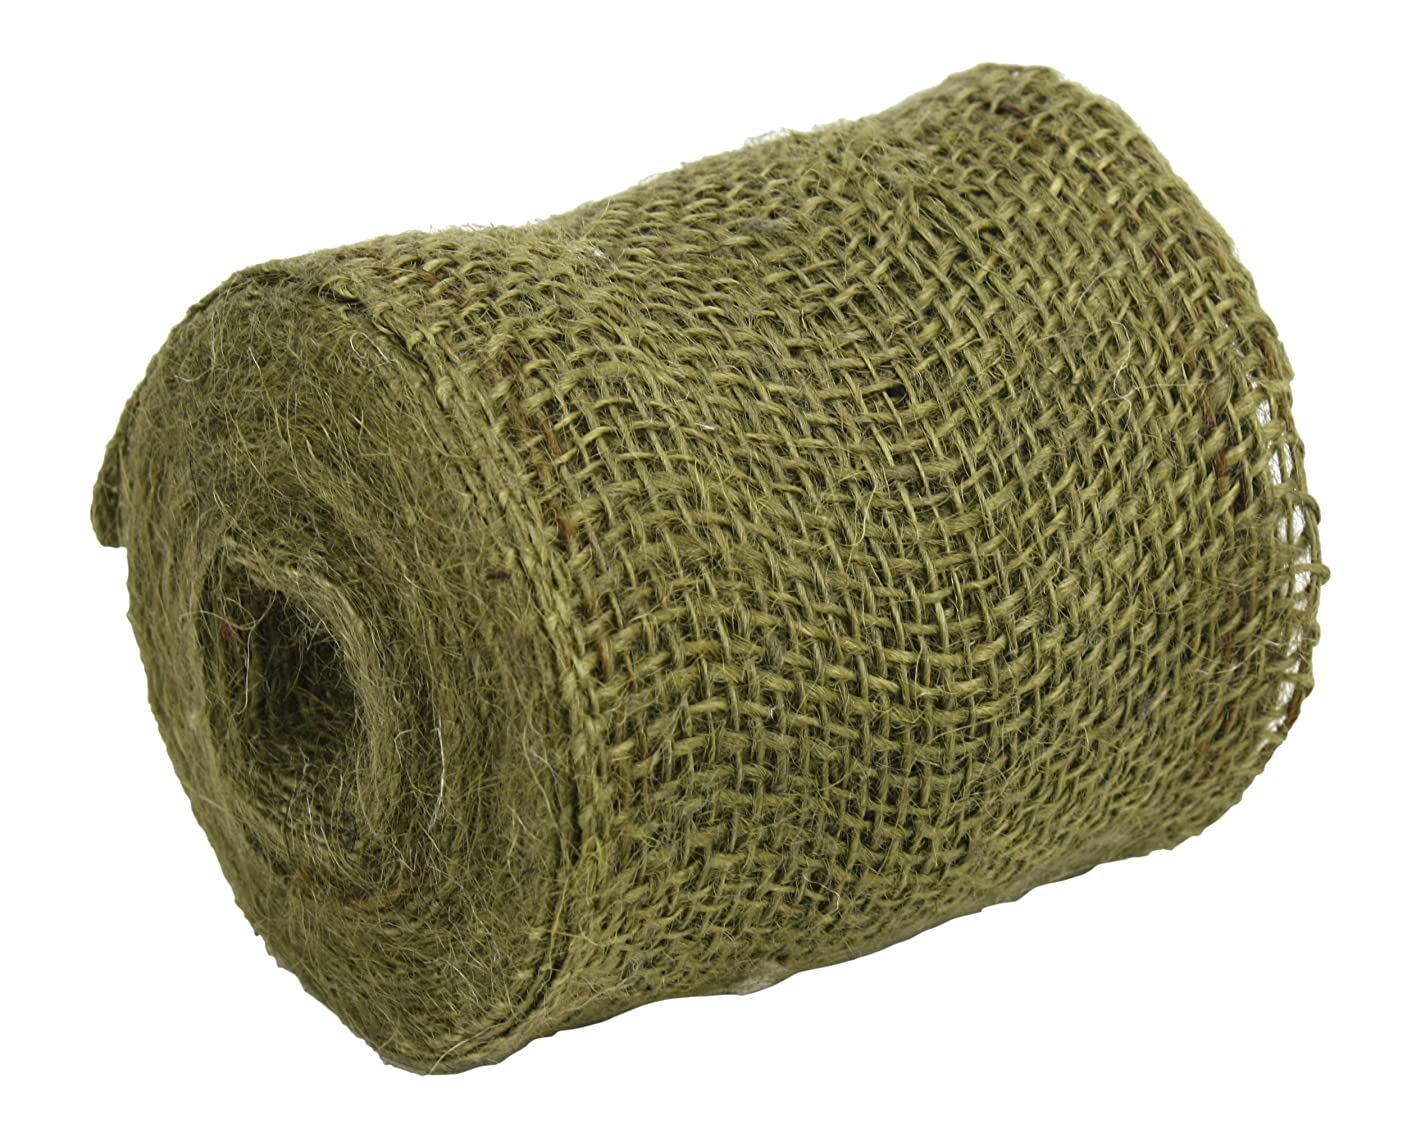 Kel-Toy RNW04-09 Burlap Ribbon with Woven Wired Edge, 4 x 10 yd, Olive